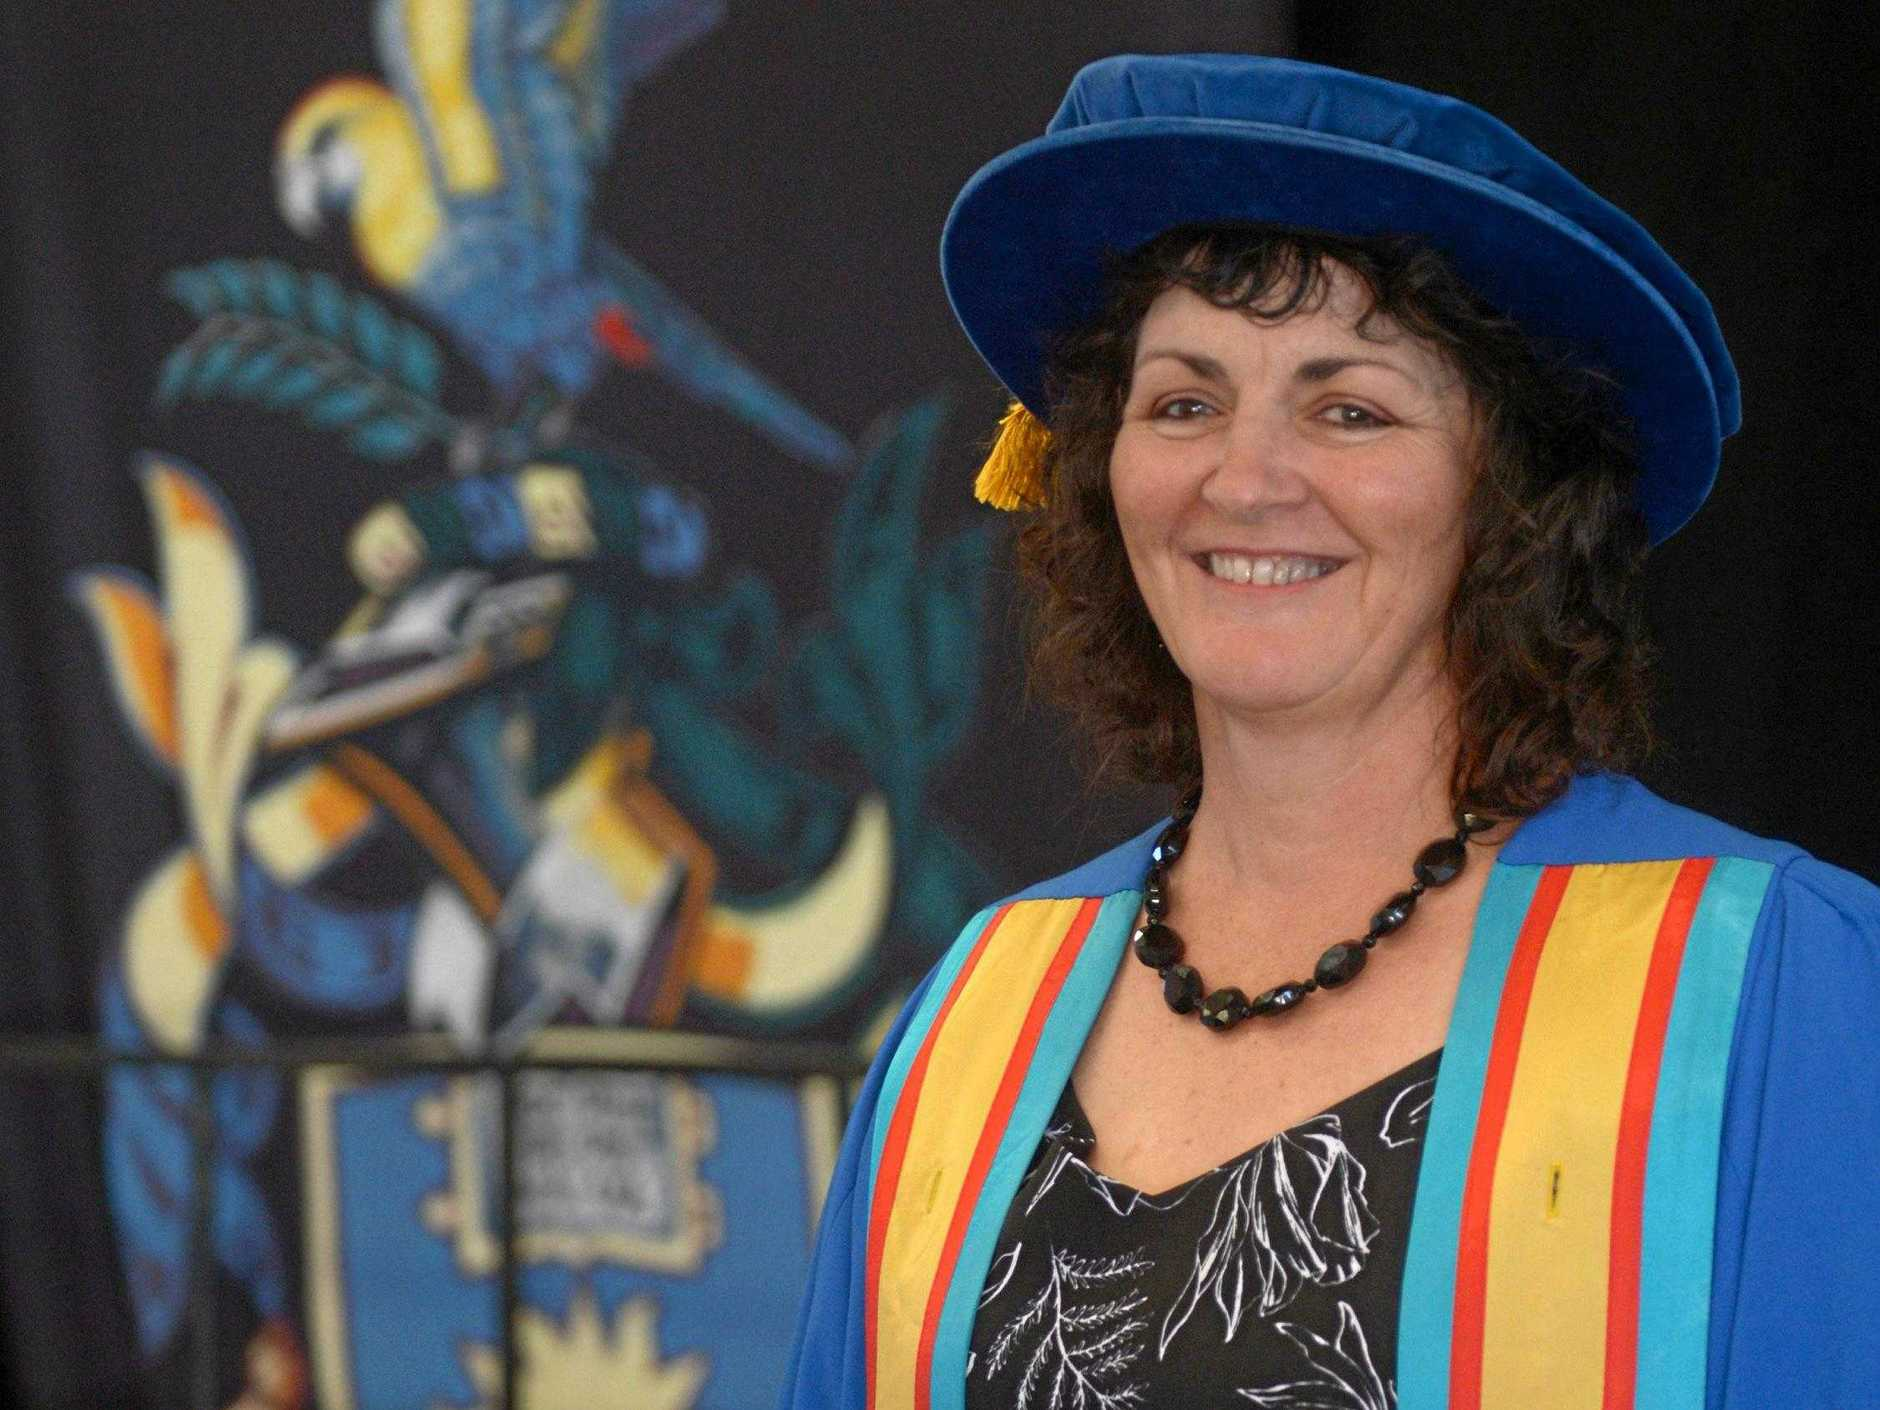 Carolyn Daniels overcame many obstacles to graduate with a PhD from CQUniversity where she also works as a researcher